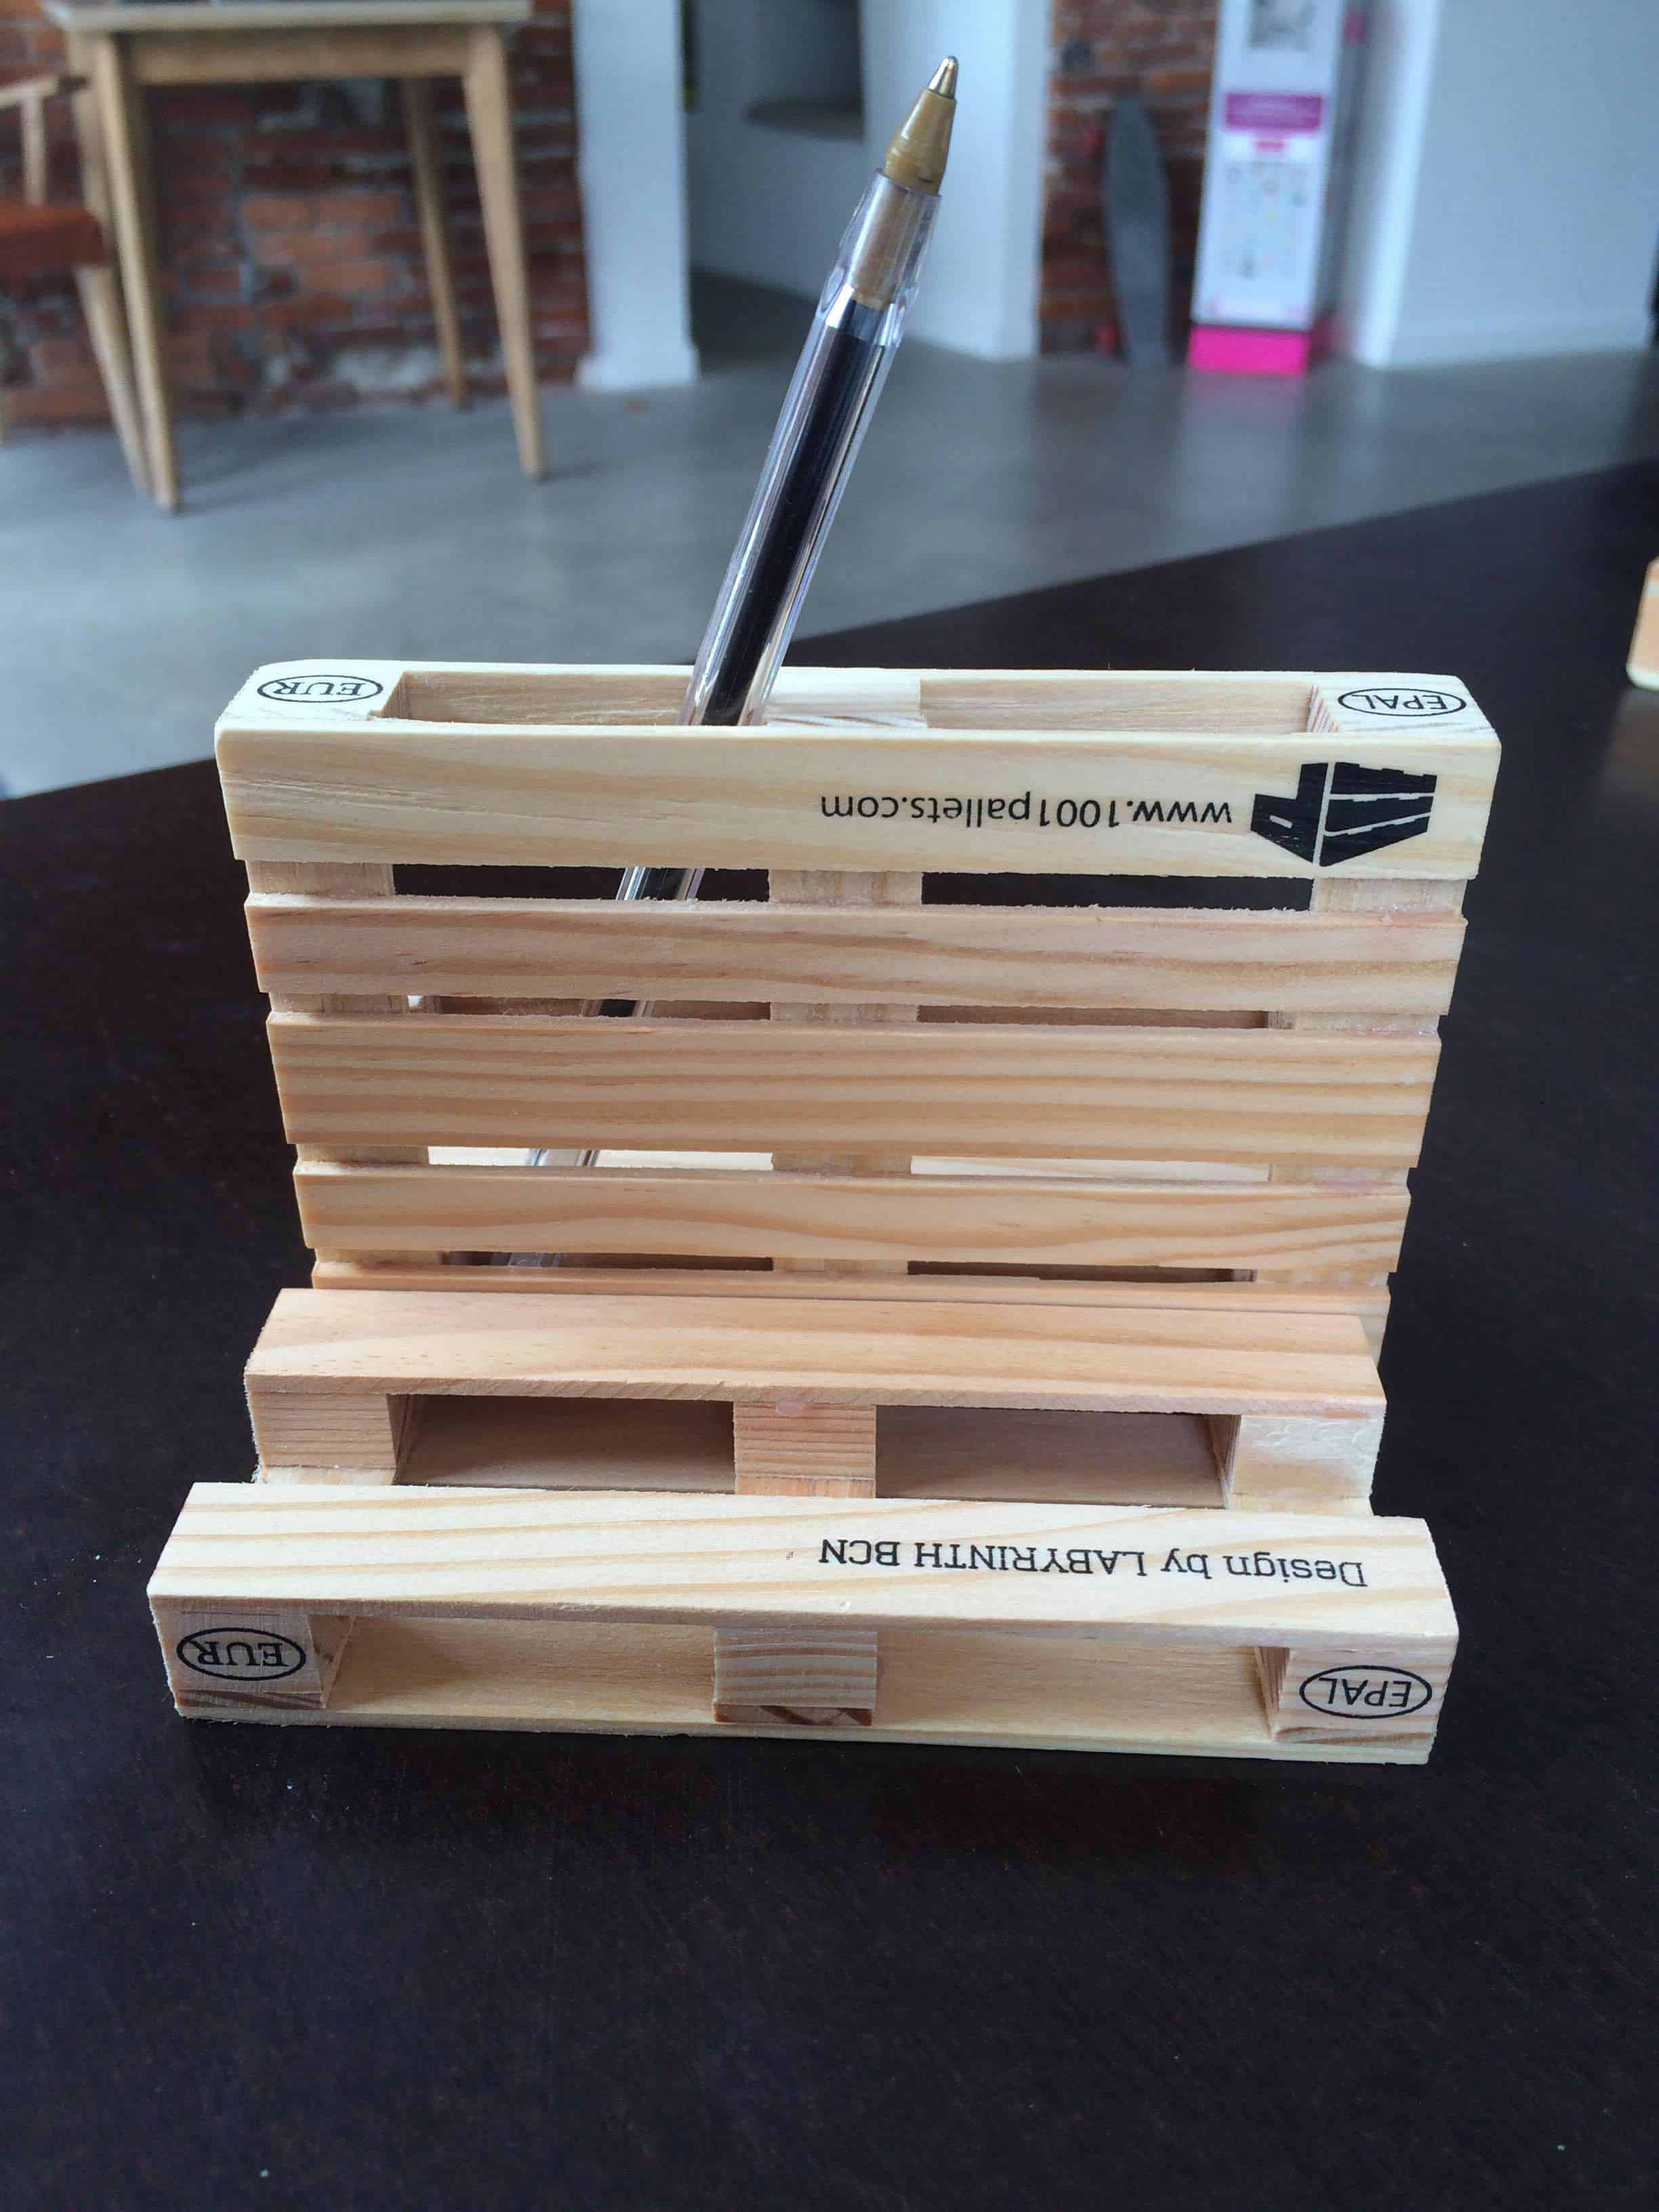 Mini Pallet Transformer Pencil Case Pallet Ideas 1001